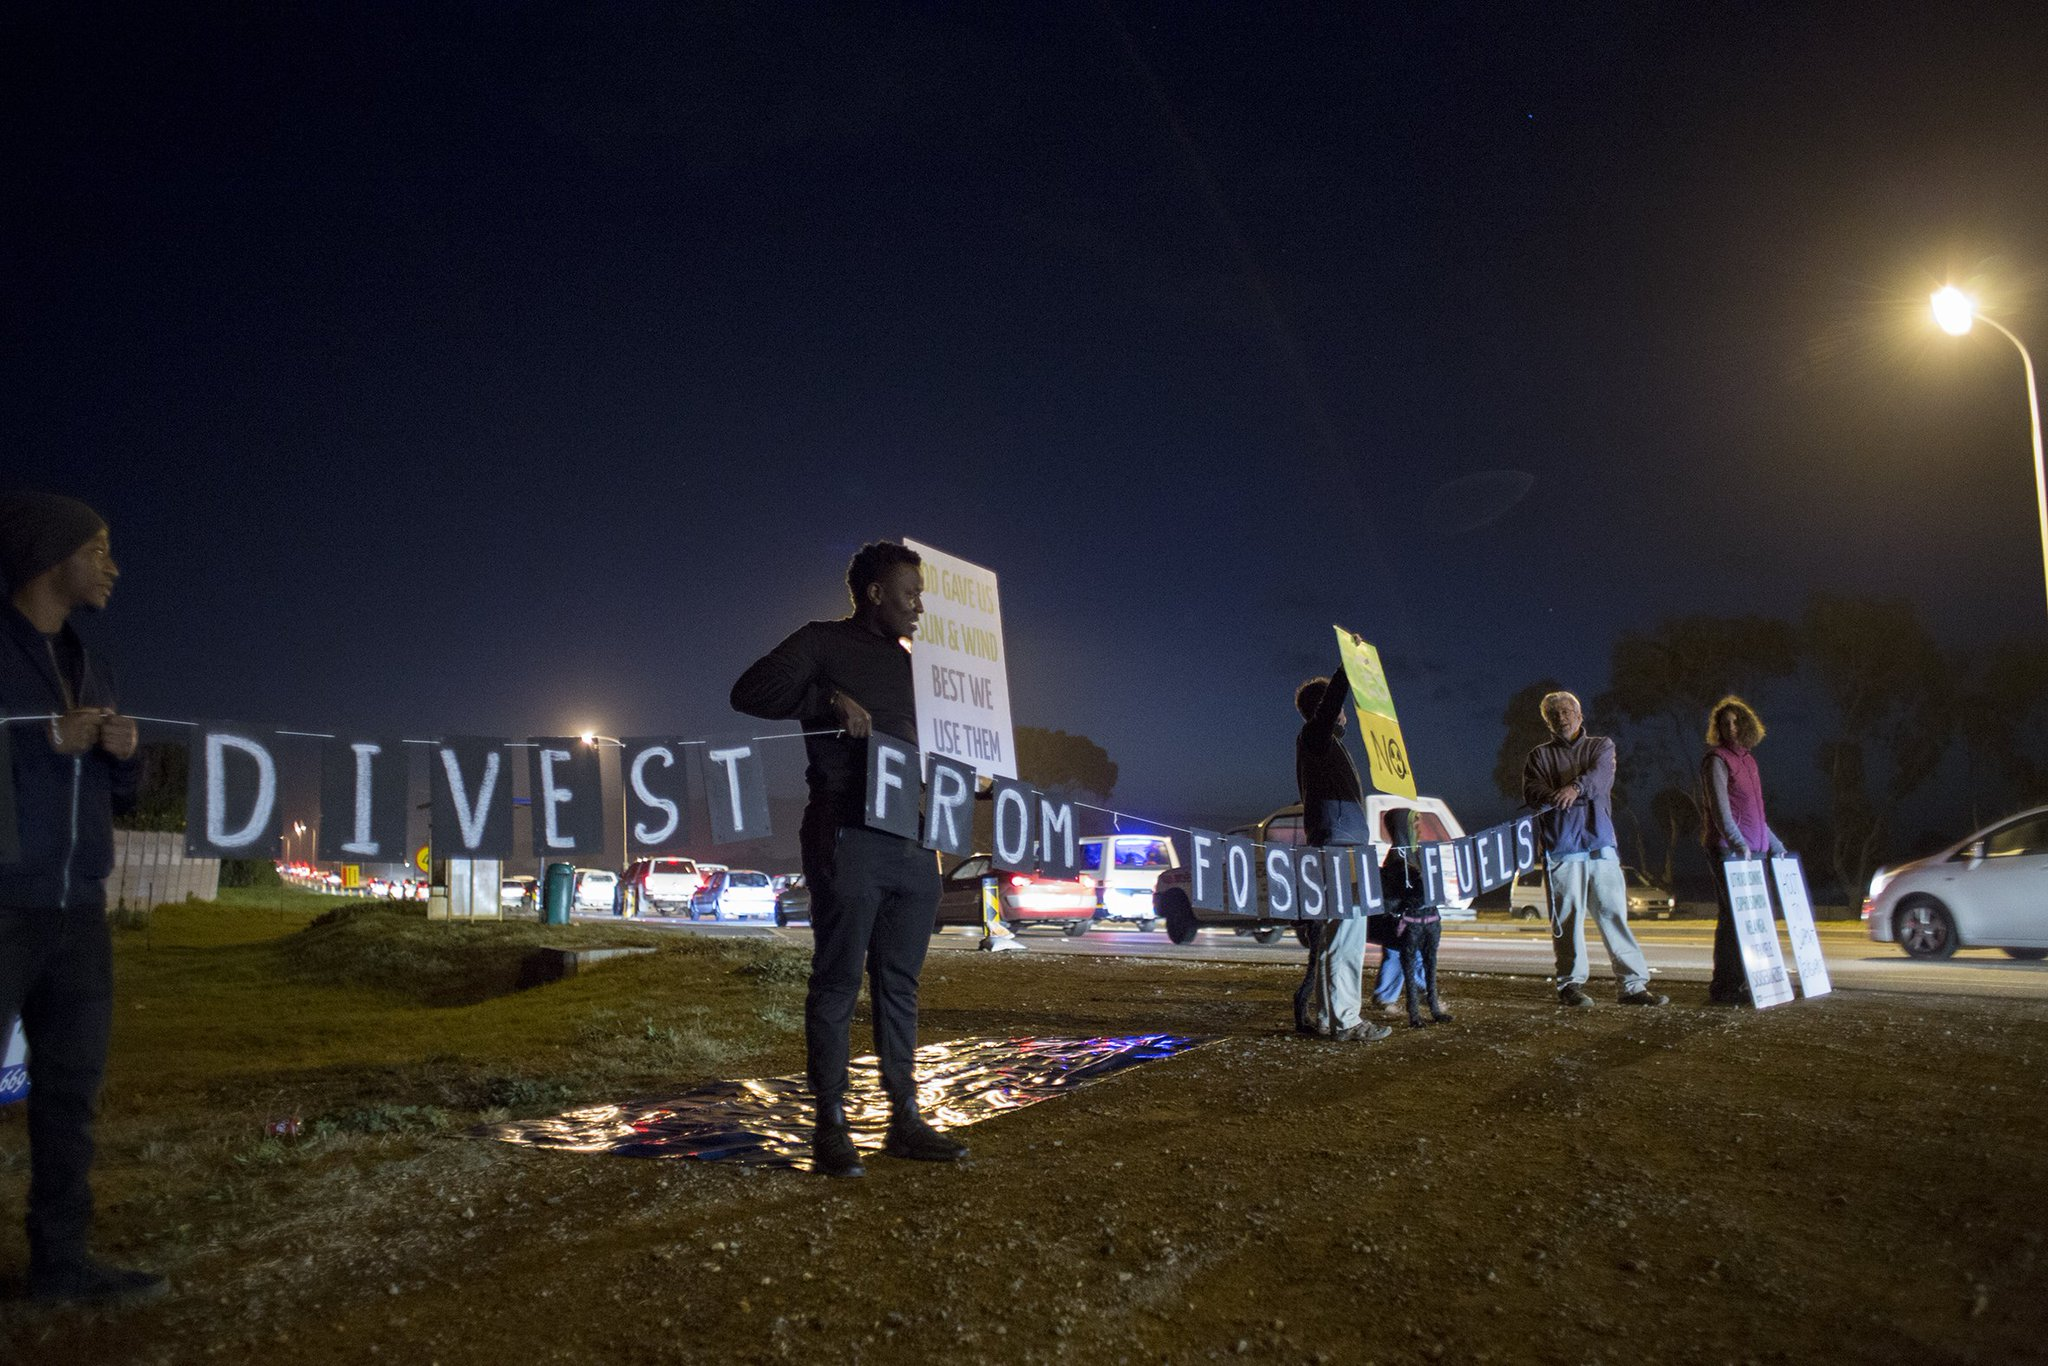 In #SouthAfrica the #gdmafrica2017 kicked off with a light display spelling out divestment messages. More pics: https://t.co/B6frOlhbhK https://t.co/4QaUhYYIzD